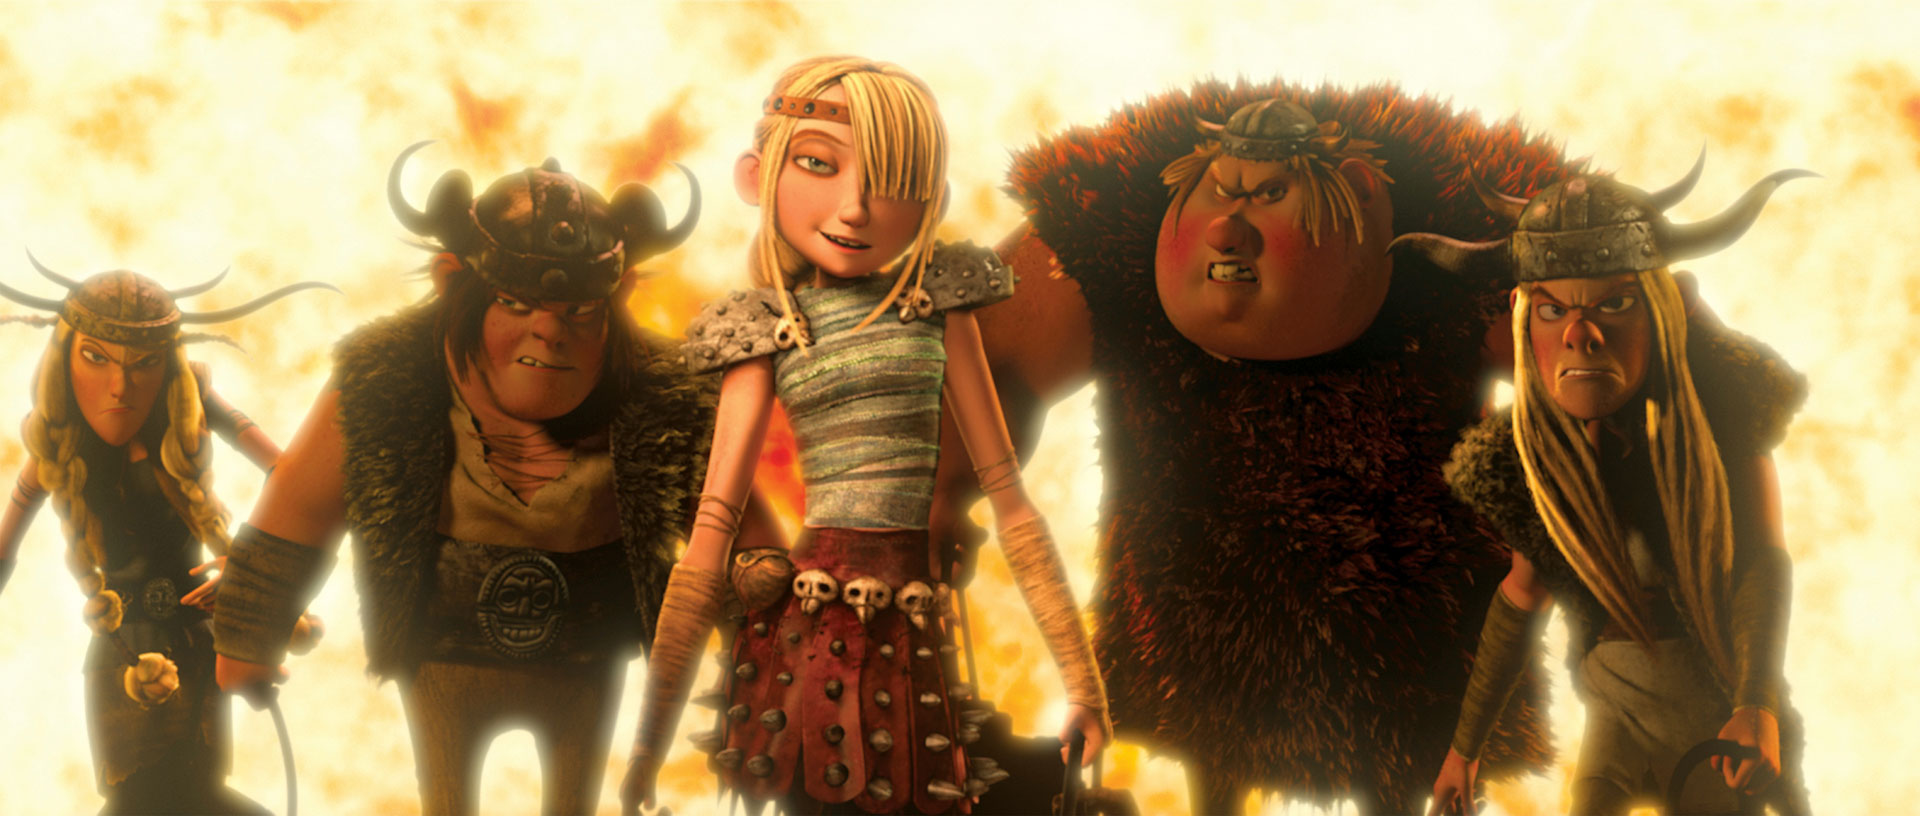 How to train your dragon on dvd almost soars toonzone news where how to train your dragon really falls down is in its supporting cast and while its not a terribly serious stumble its big enough to keep it from ccuart Image collections